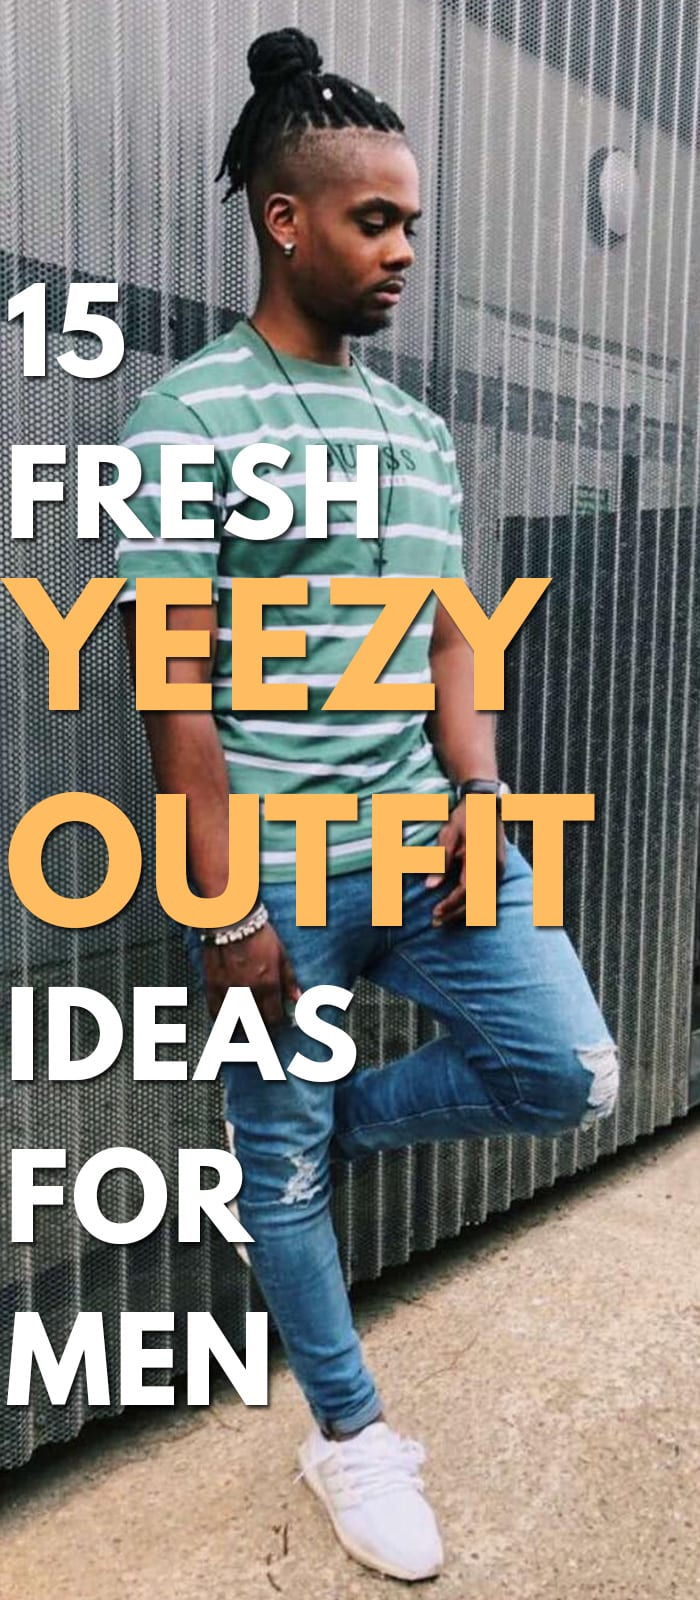 15 Fresh Yeezy Outfit Ideas For Men